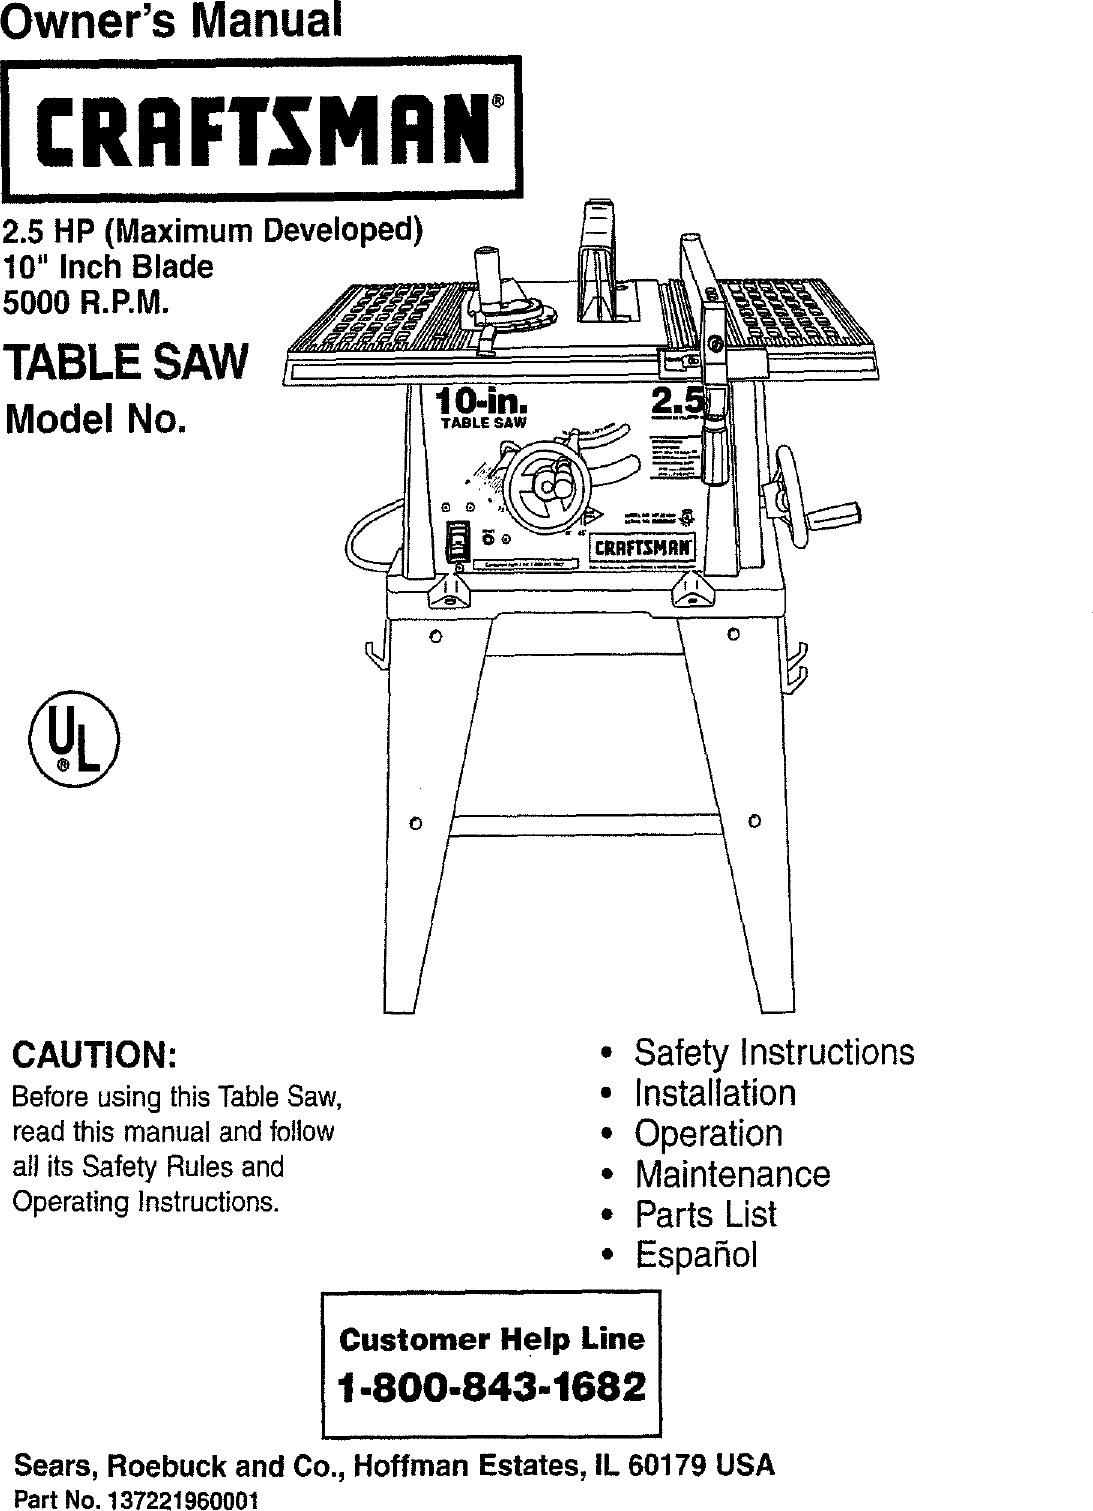 Craftsman 137221960 User Manual TABLE SAW Manuals And